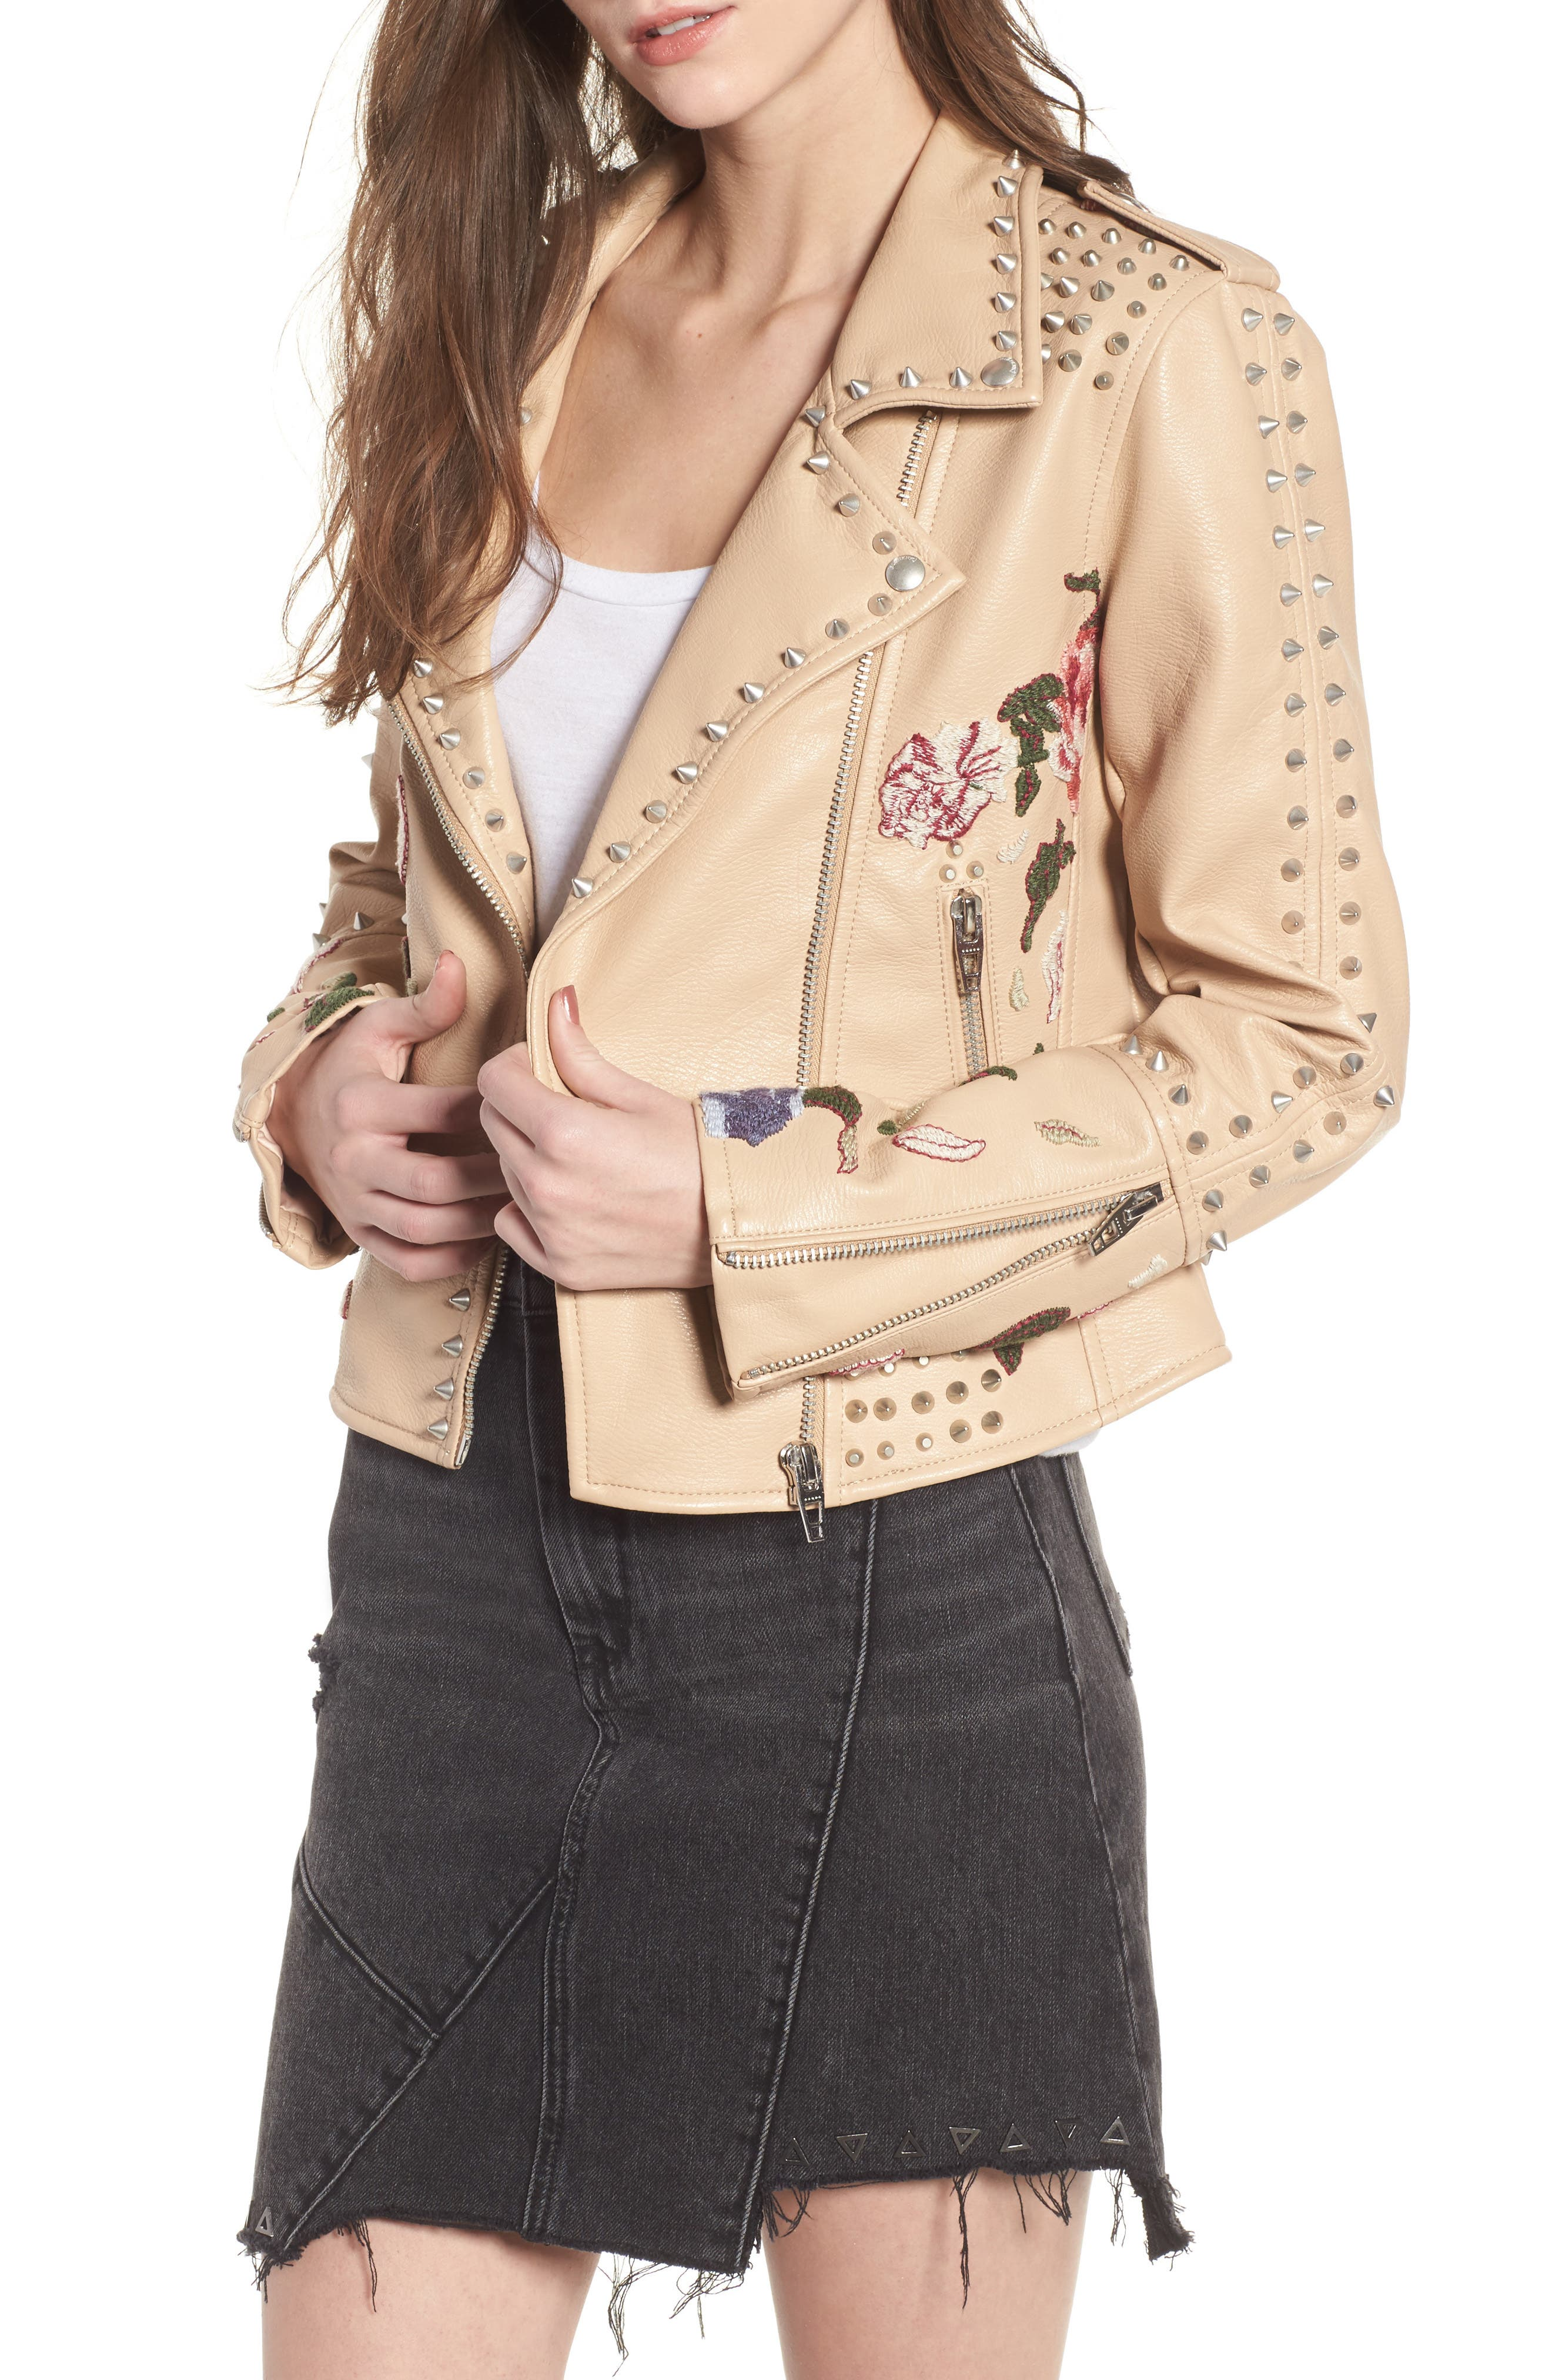 Alternate Image 1 Selected - BLANKNYC Embellished Faux Leather Moto Jacket